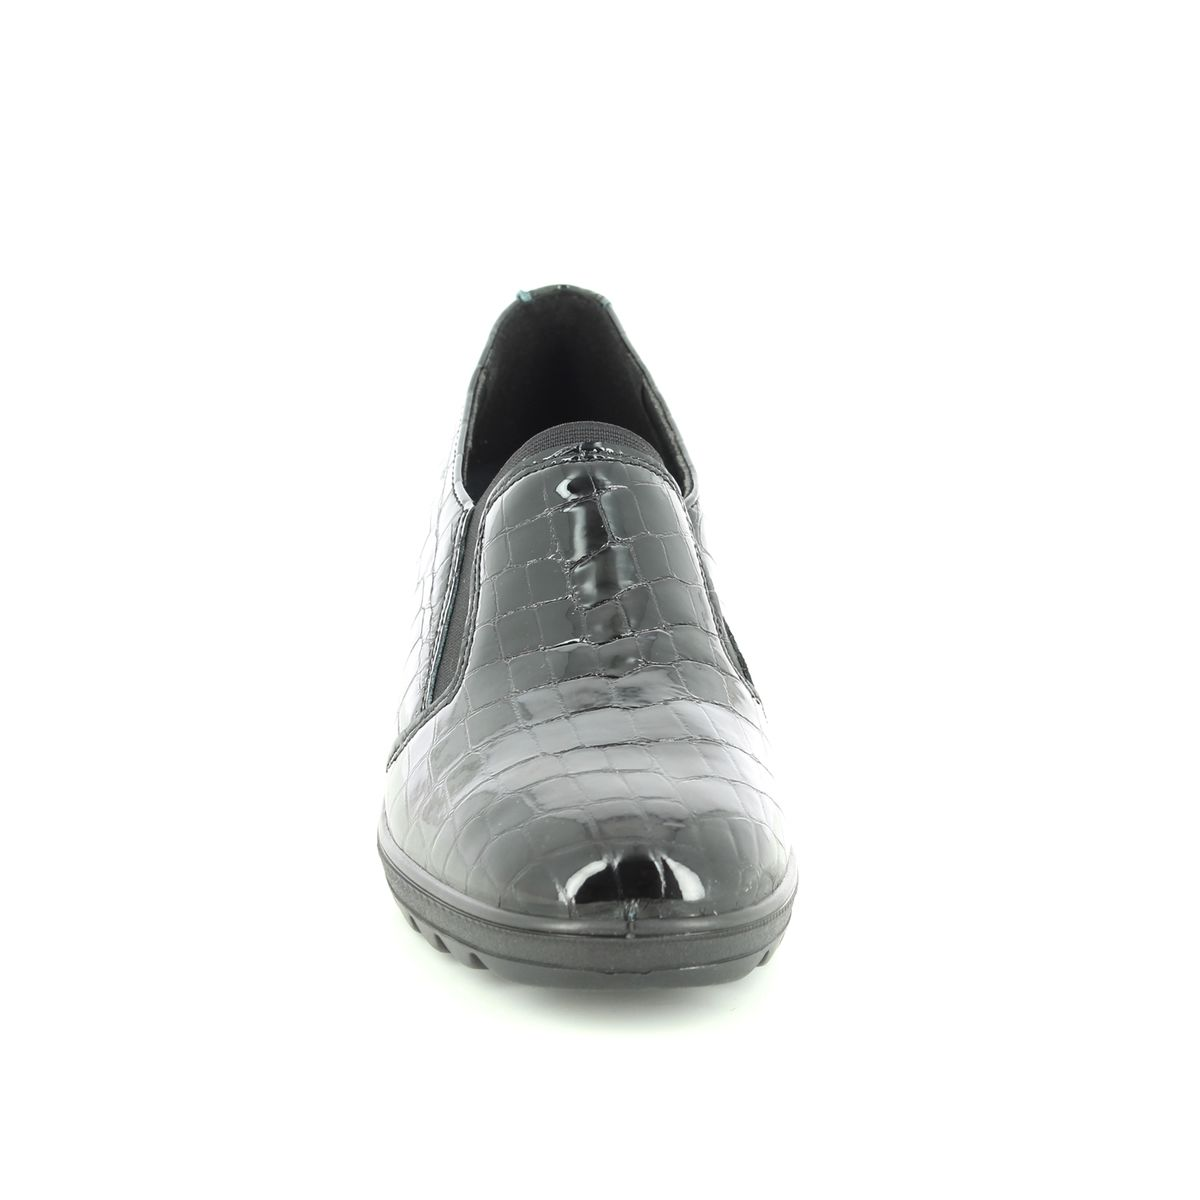 8166b479475c IMAC Wedge Shoes - Black croc - 8430 4160011 ROXANA